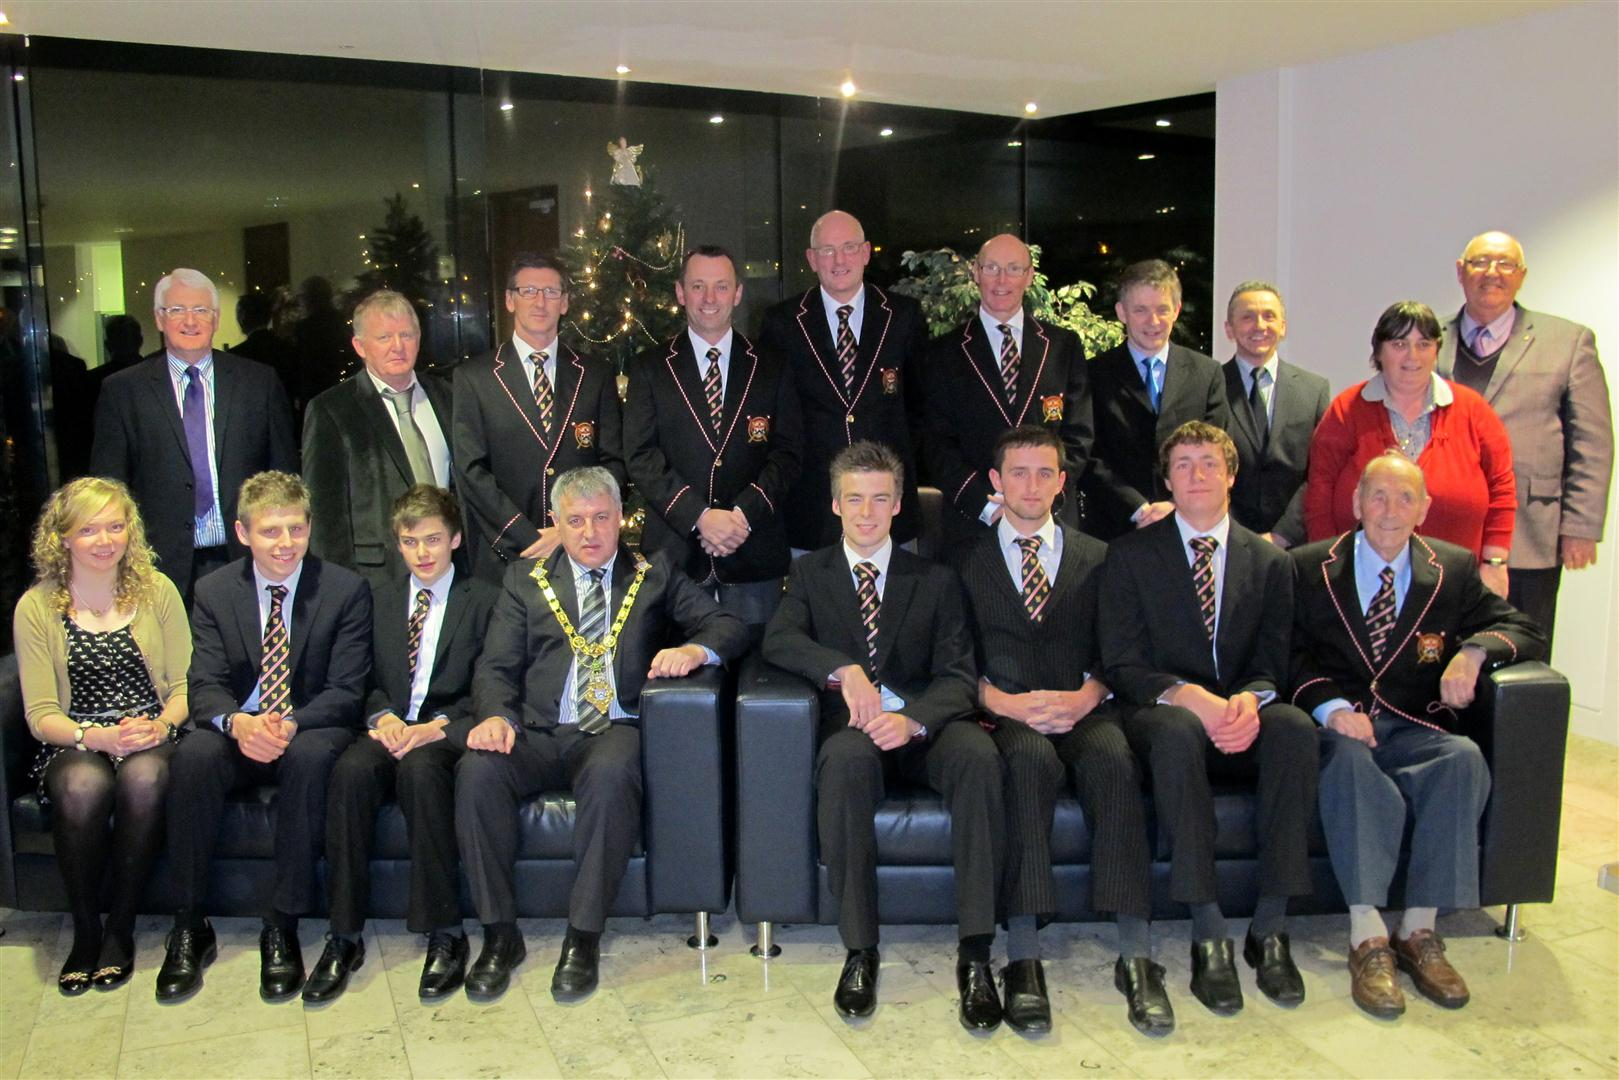 The Mayor and Coleraine council meet Bann's Irish Champions